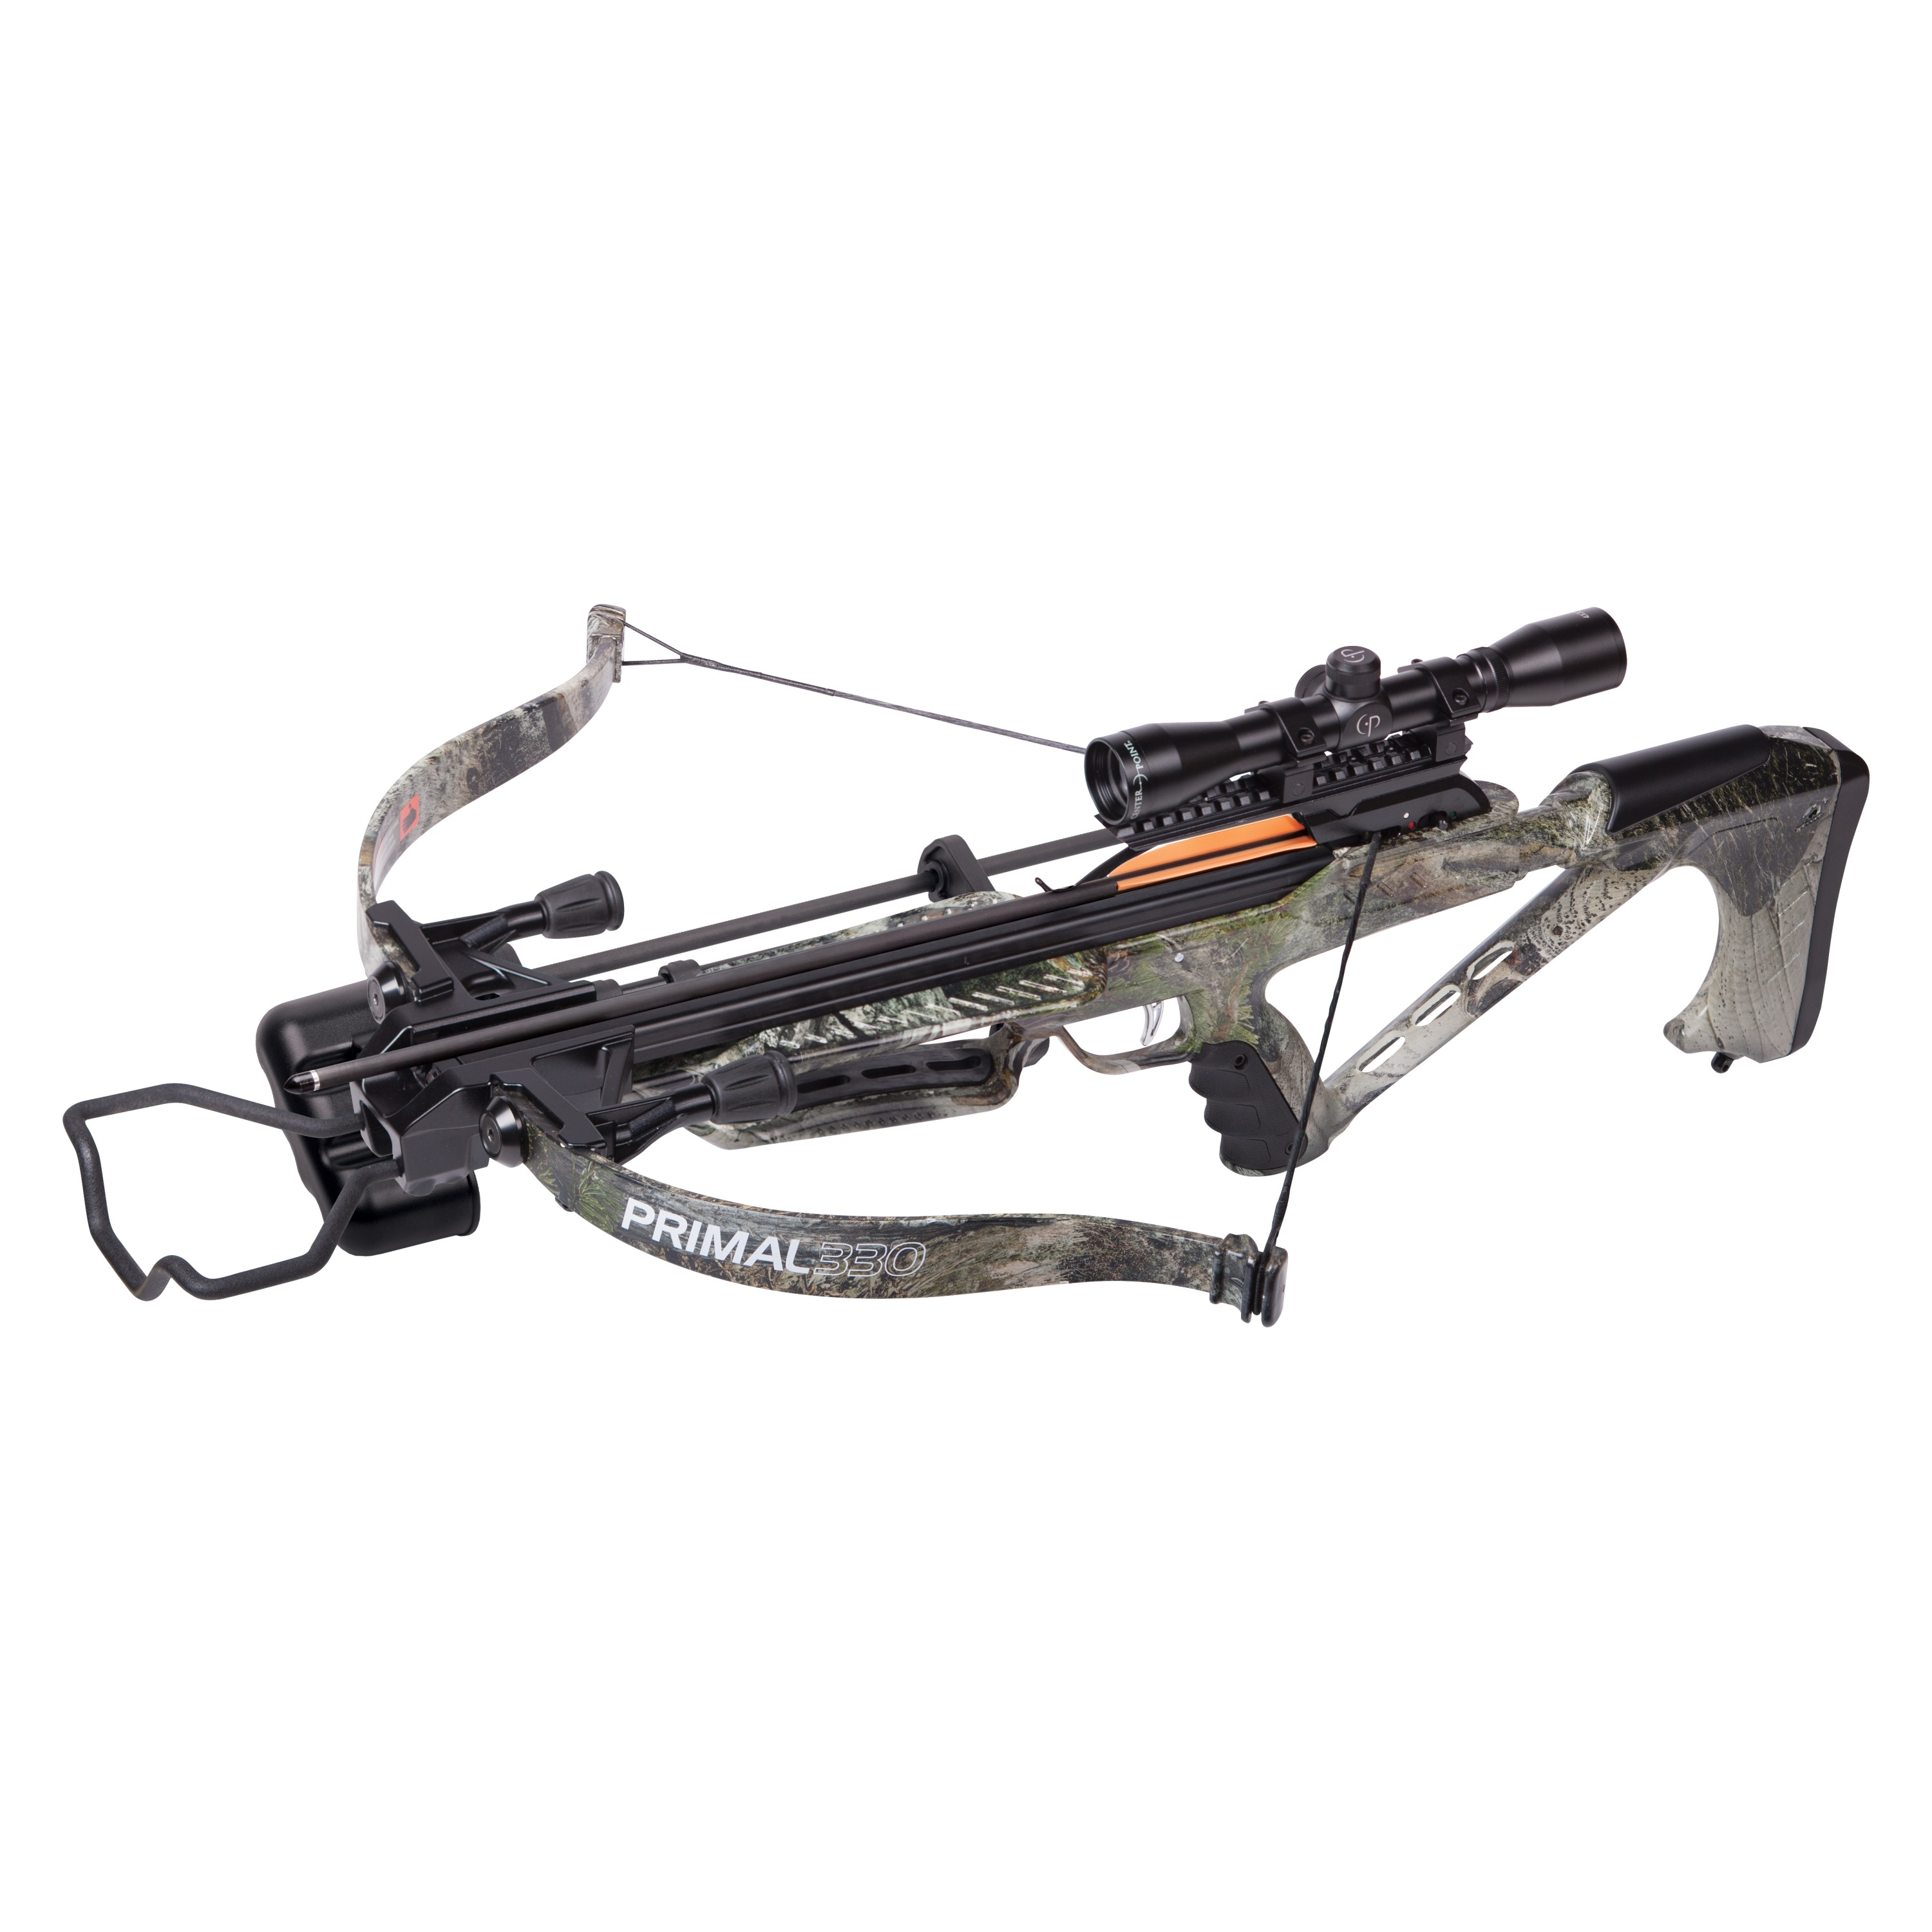 CenterPoint Archery PRIMAL Recurve Crossbow